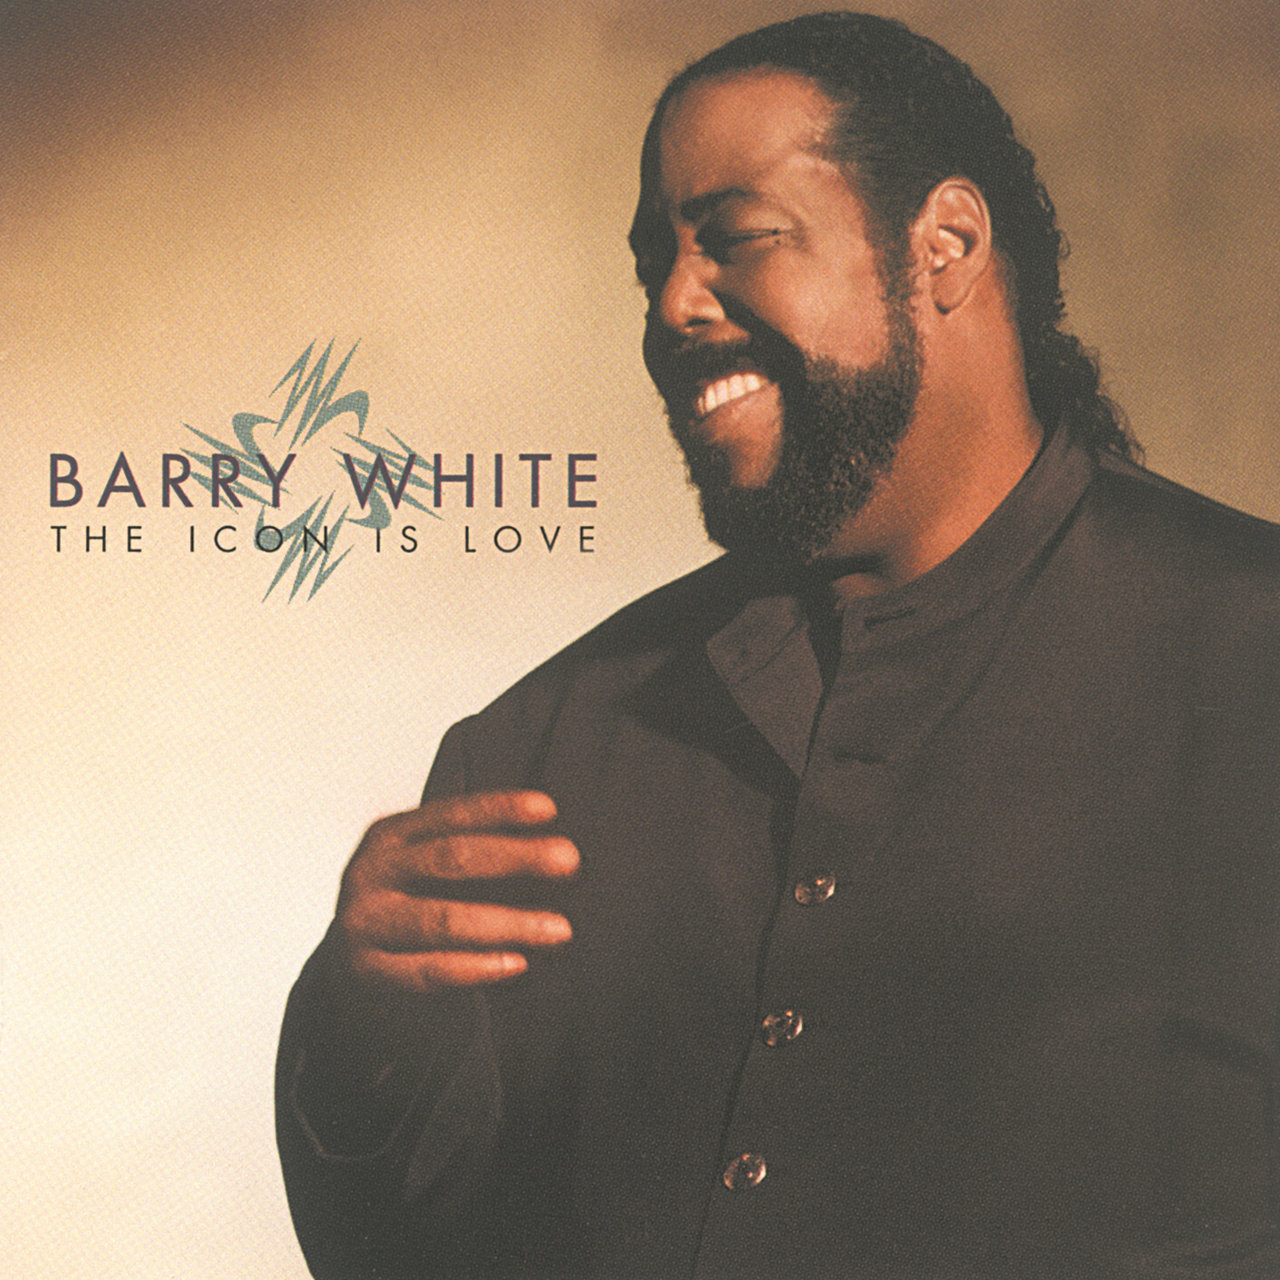 Gerald Levert Songs in the icon is love / barry white tidal